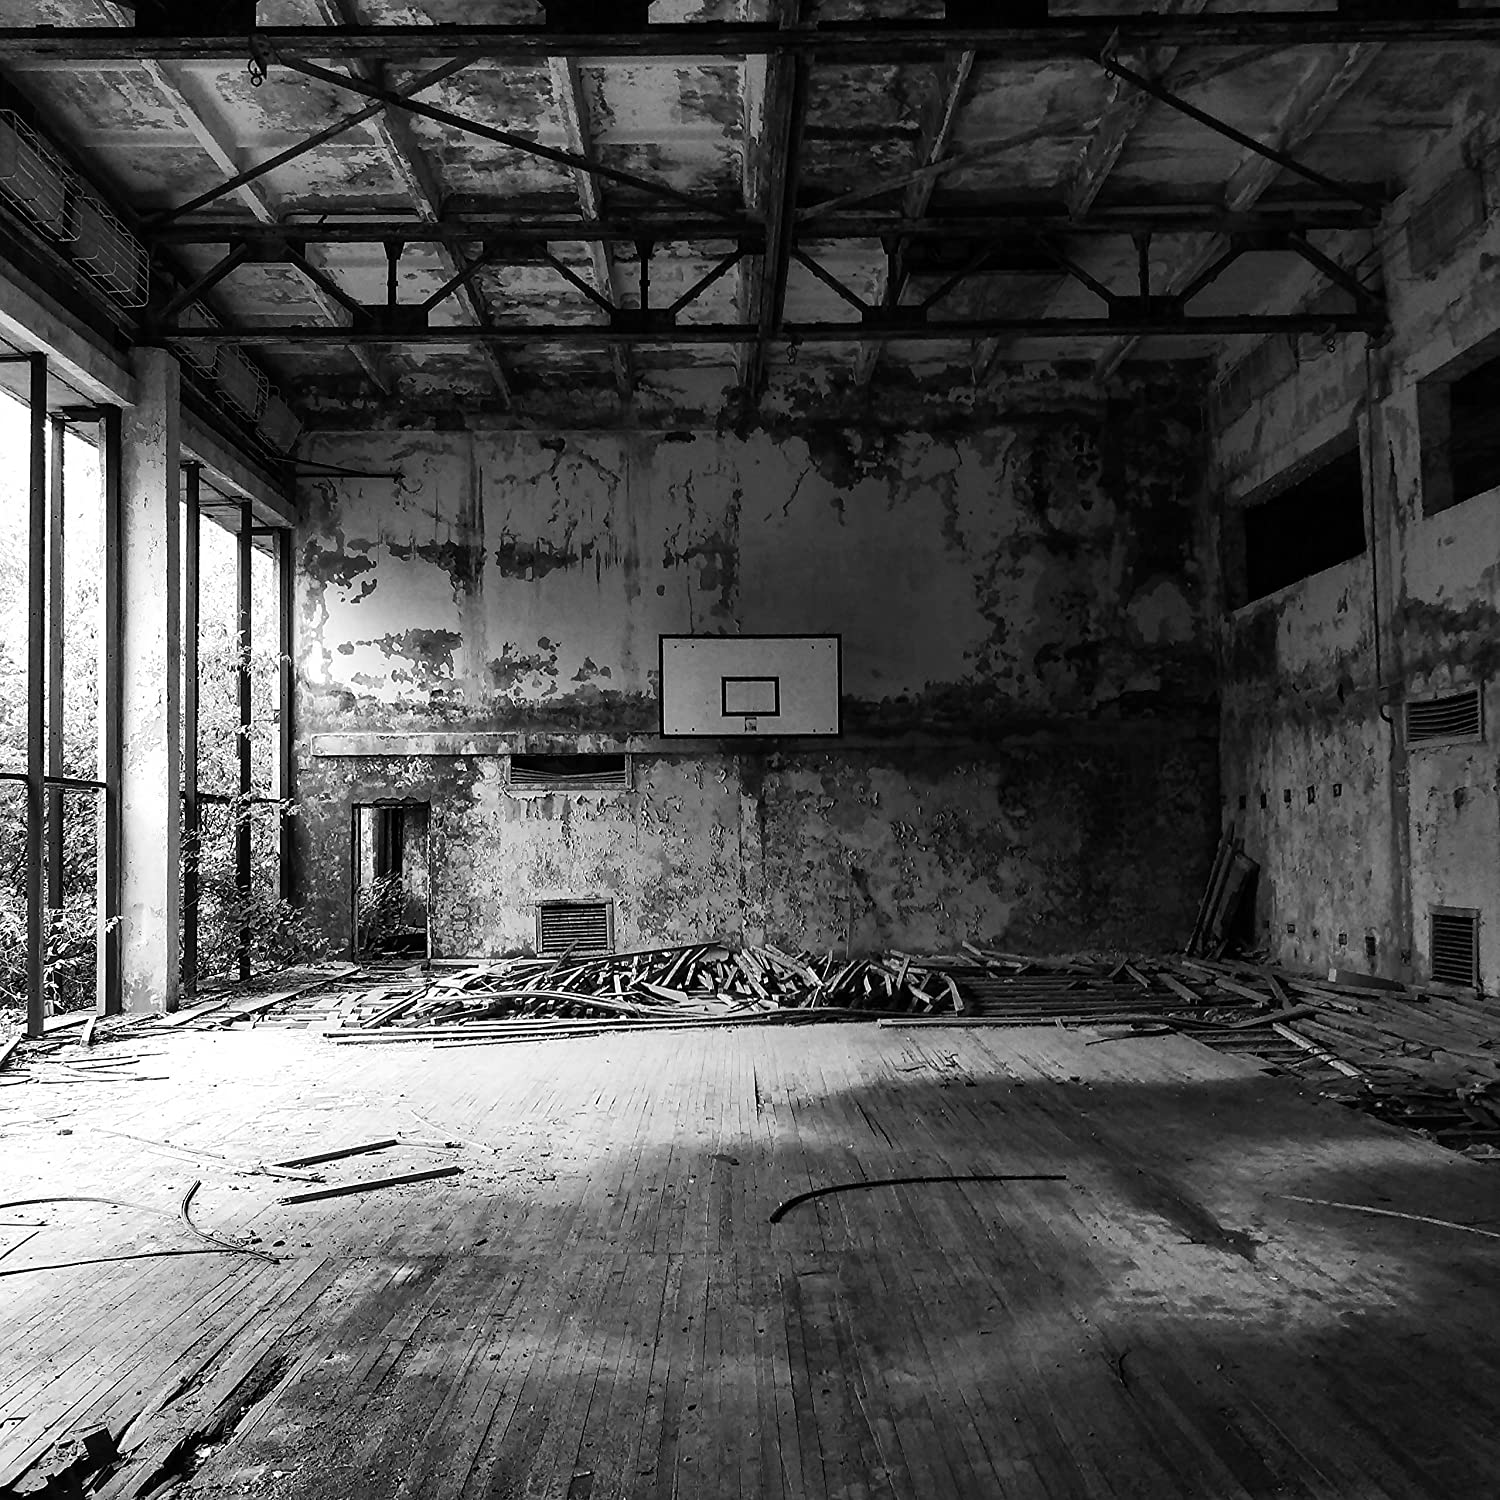 Amazon com chernobyl photography pripyat photography ukraine photography ukraine art black and white basketball court ghost town abandoned